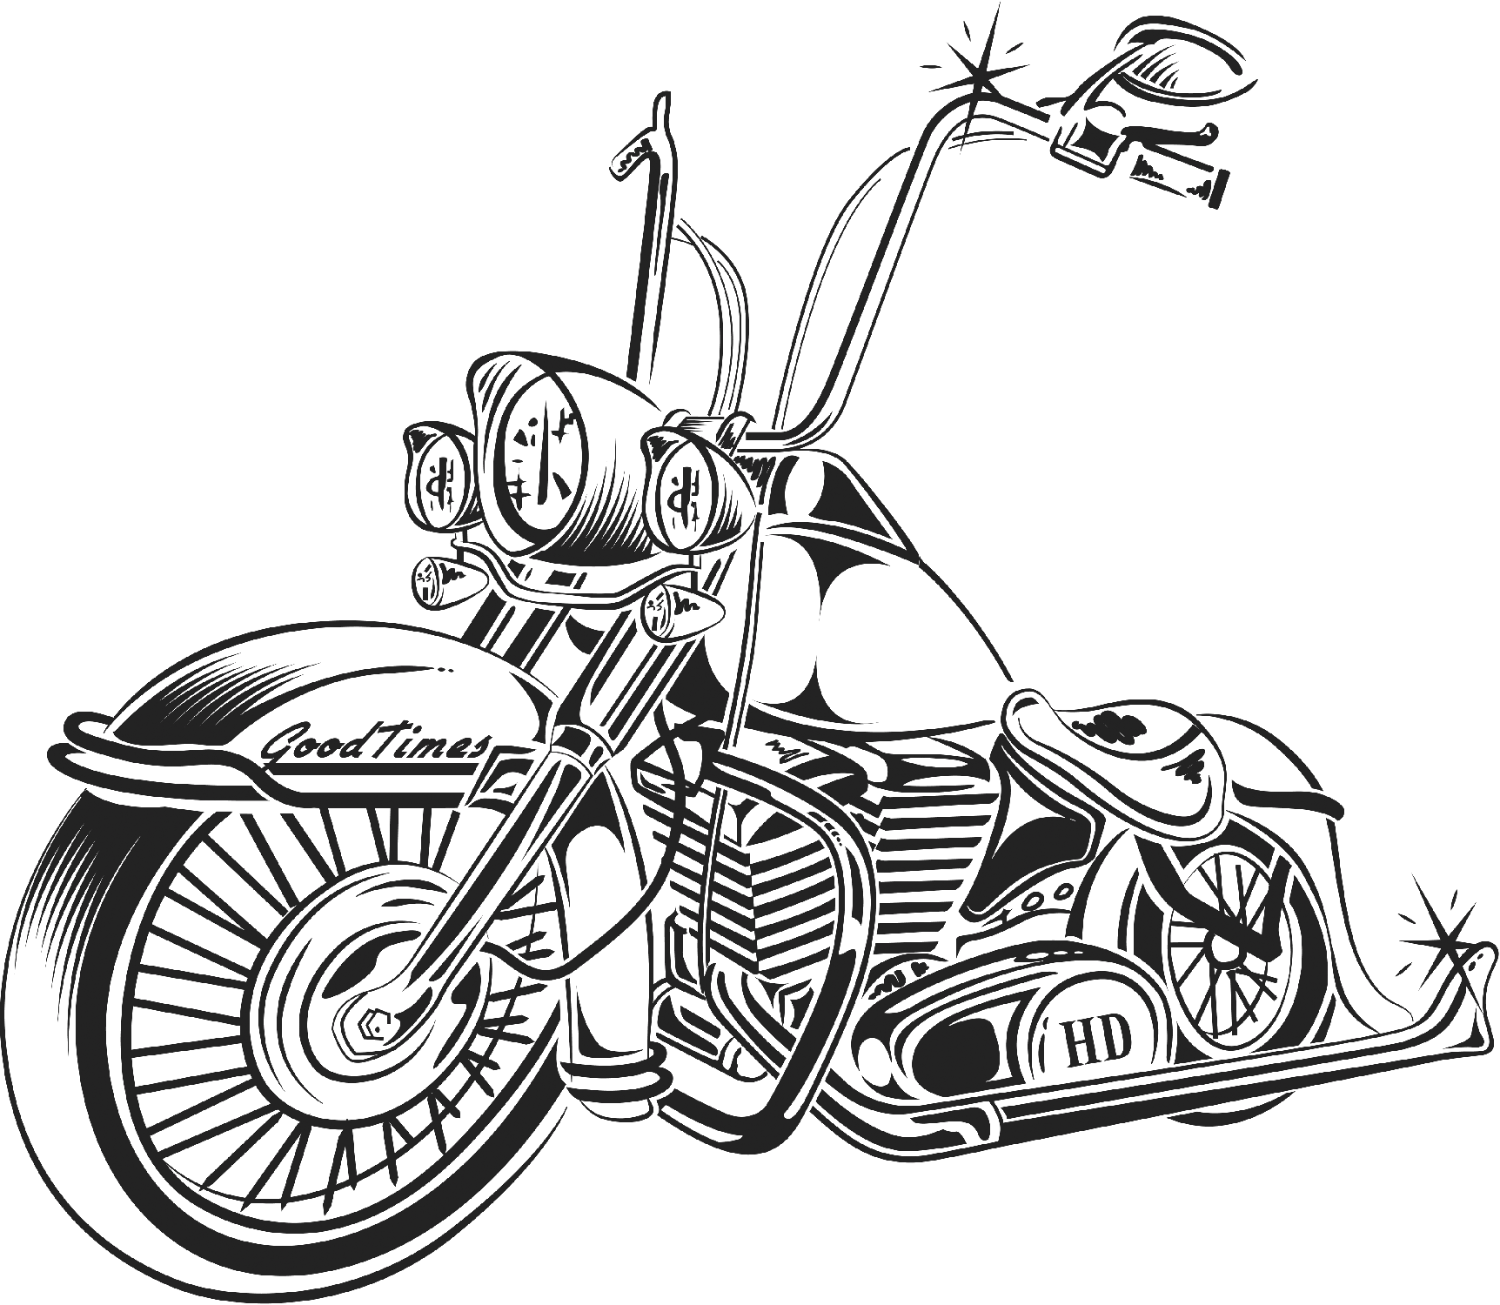 Dog on motorcycle clipart. Chopper drawing at getdrawings